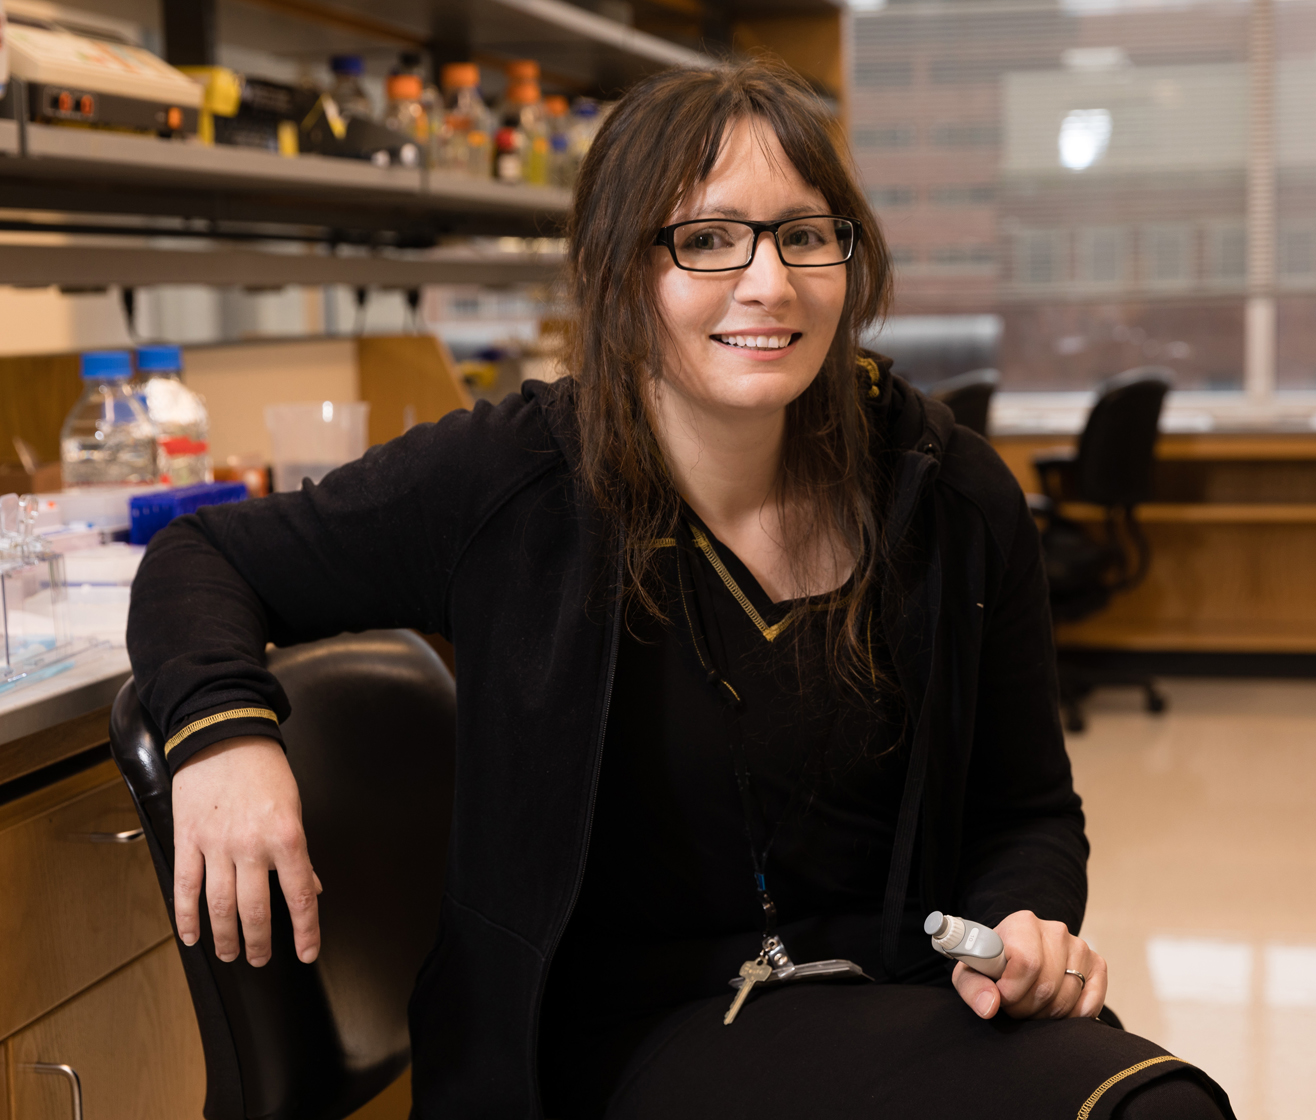 Kate Adamala Kate is a biochemist building synthetic cells. Her research aims at understanding chemical principles of biology, using artificial cells to create new tools for bioengineering, drug development, and basic research.